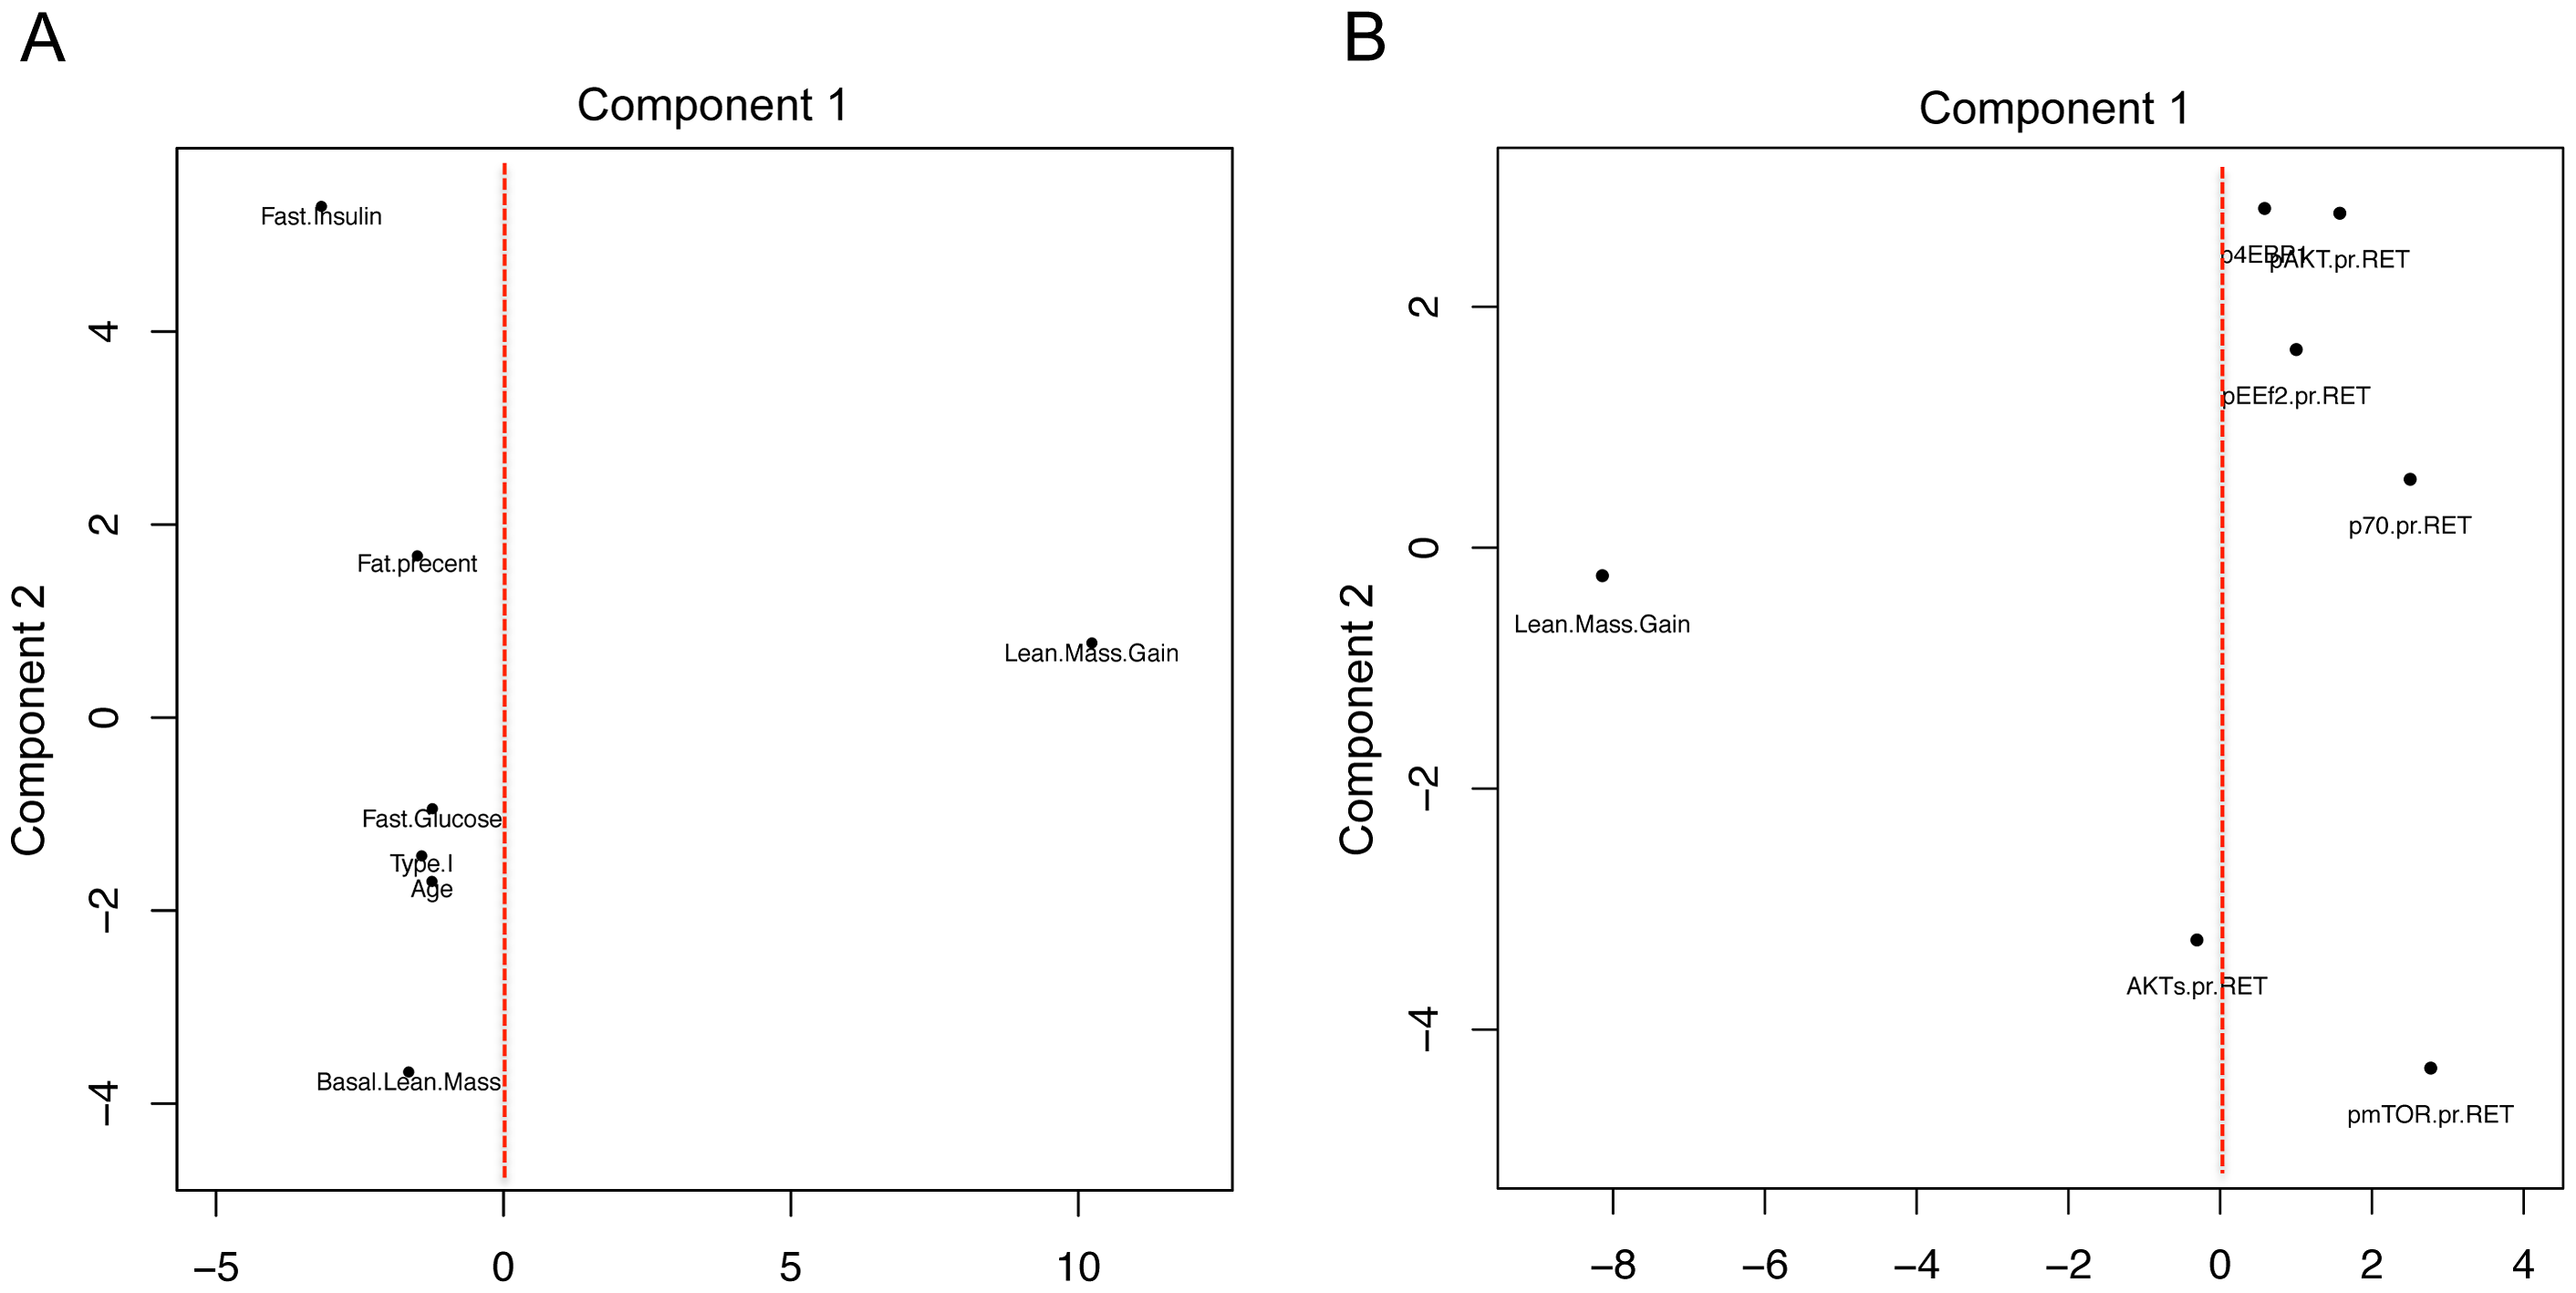 Using principal component analysis to evaluate the relationship between physiological and acute protein signaling events to RET induced gains in lean mass.